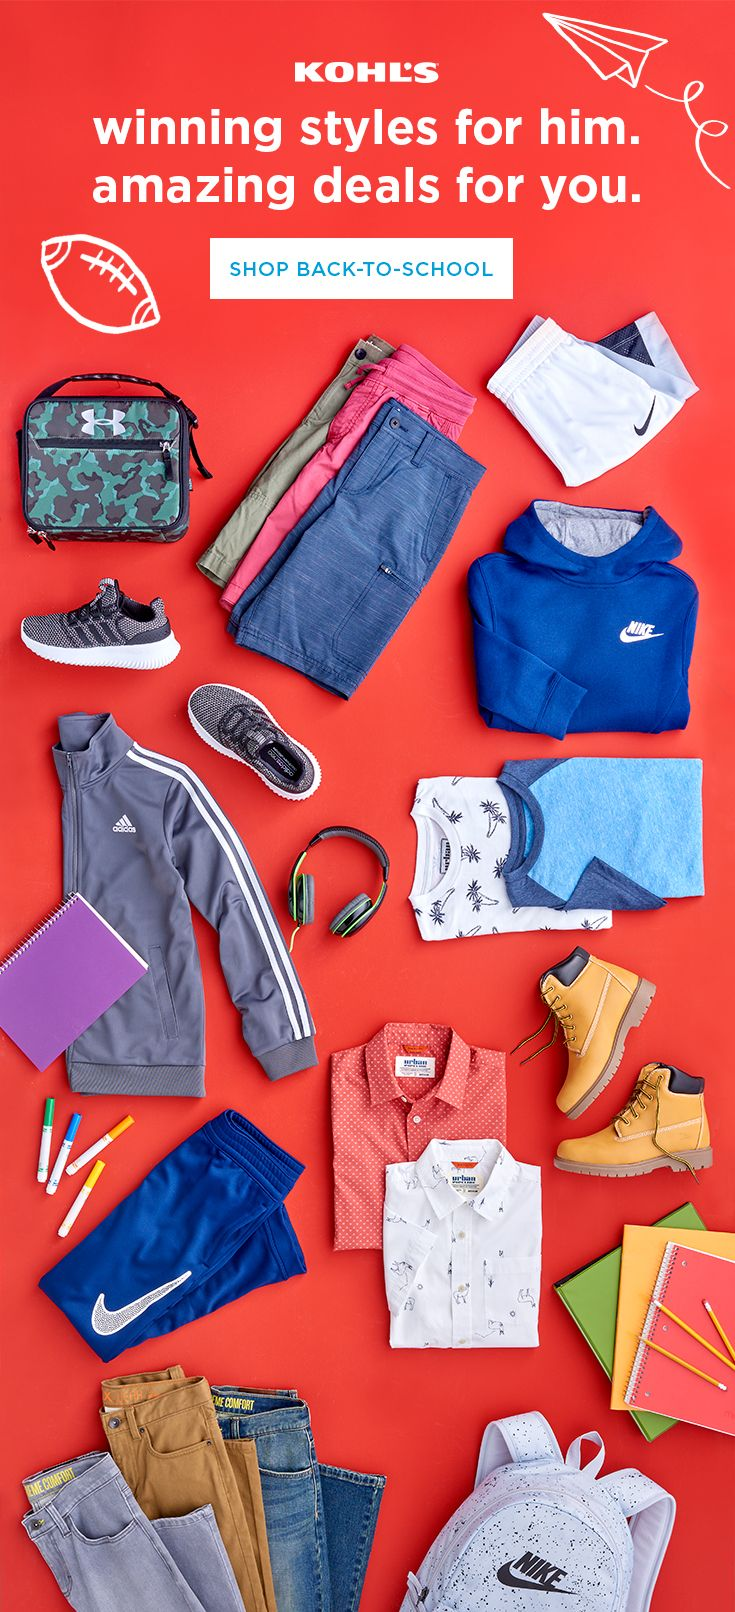 573e1905748 Do you have all his back-to-school style faves  Update his fall look with  style essentials like activewear